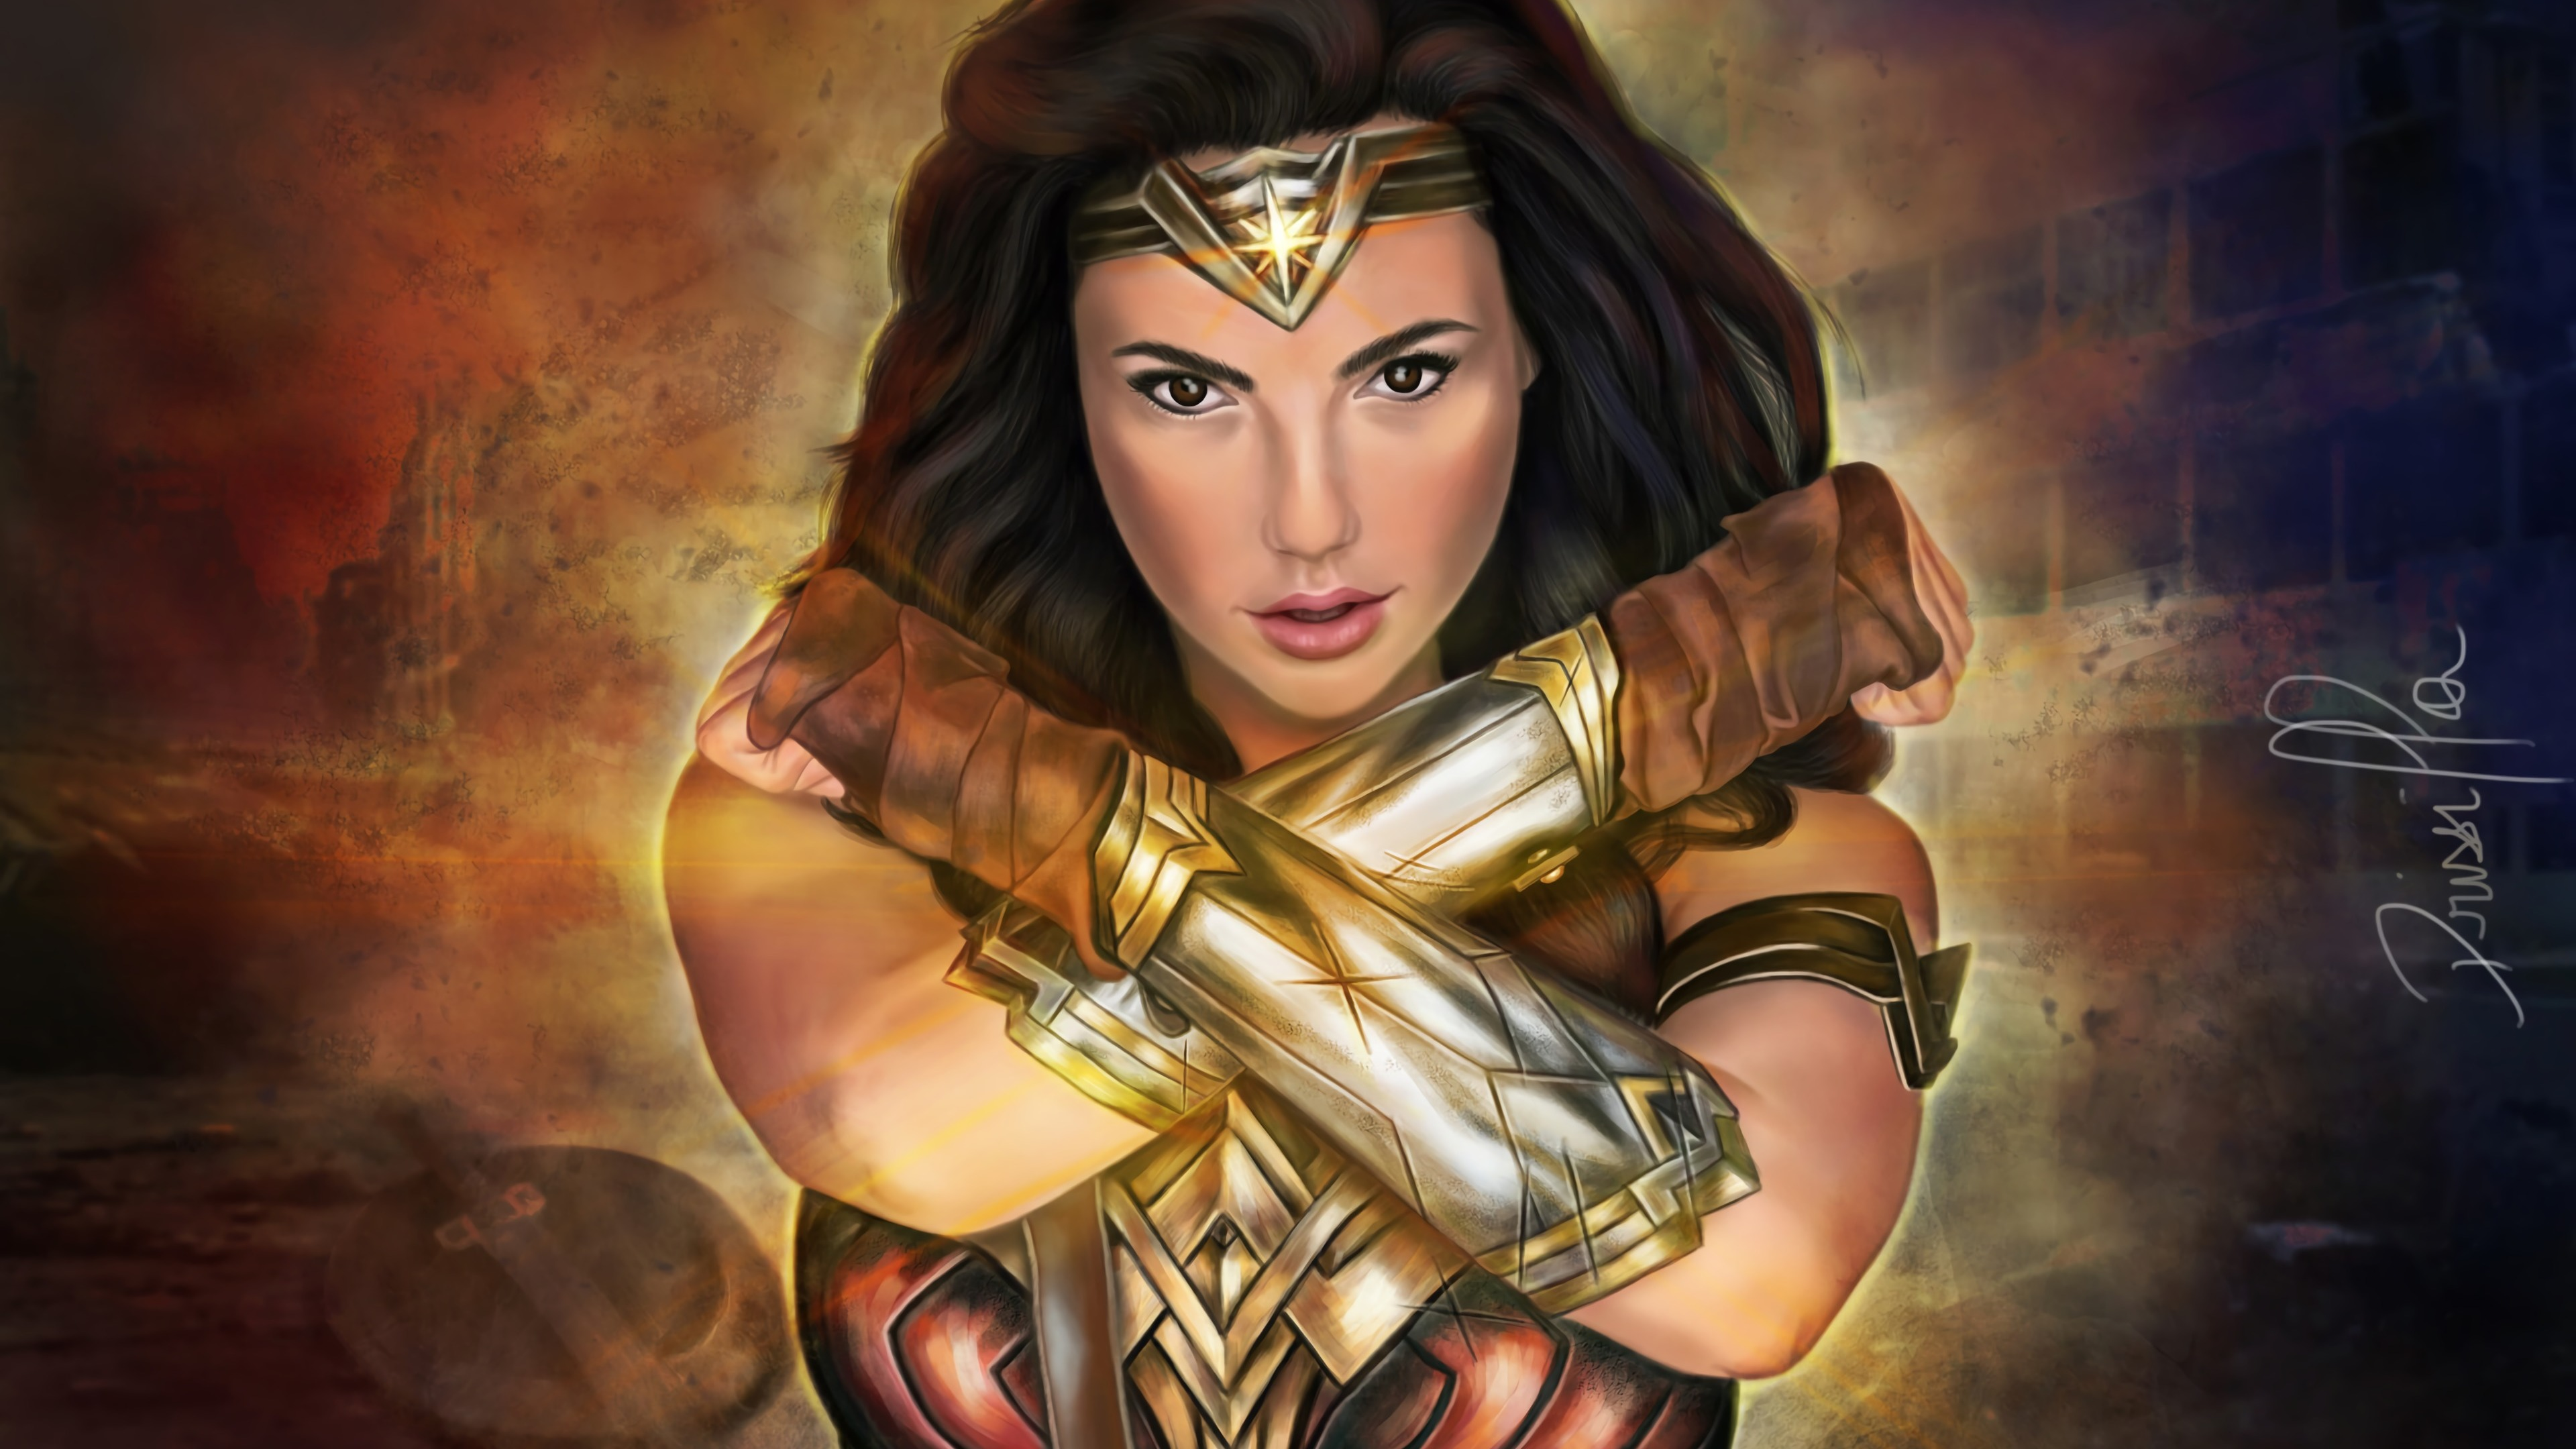 wonder woman paint art 1568054600 - wonder Woman Paint Art - wonder woman wallpapers, superheroes wallpapers, hd-wallpapers, digital art wallpapers, artwork wallpapers, artstation wallpapers, 4k-wallpapers